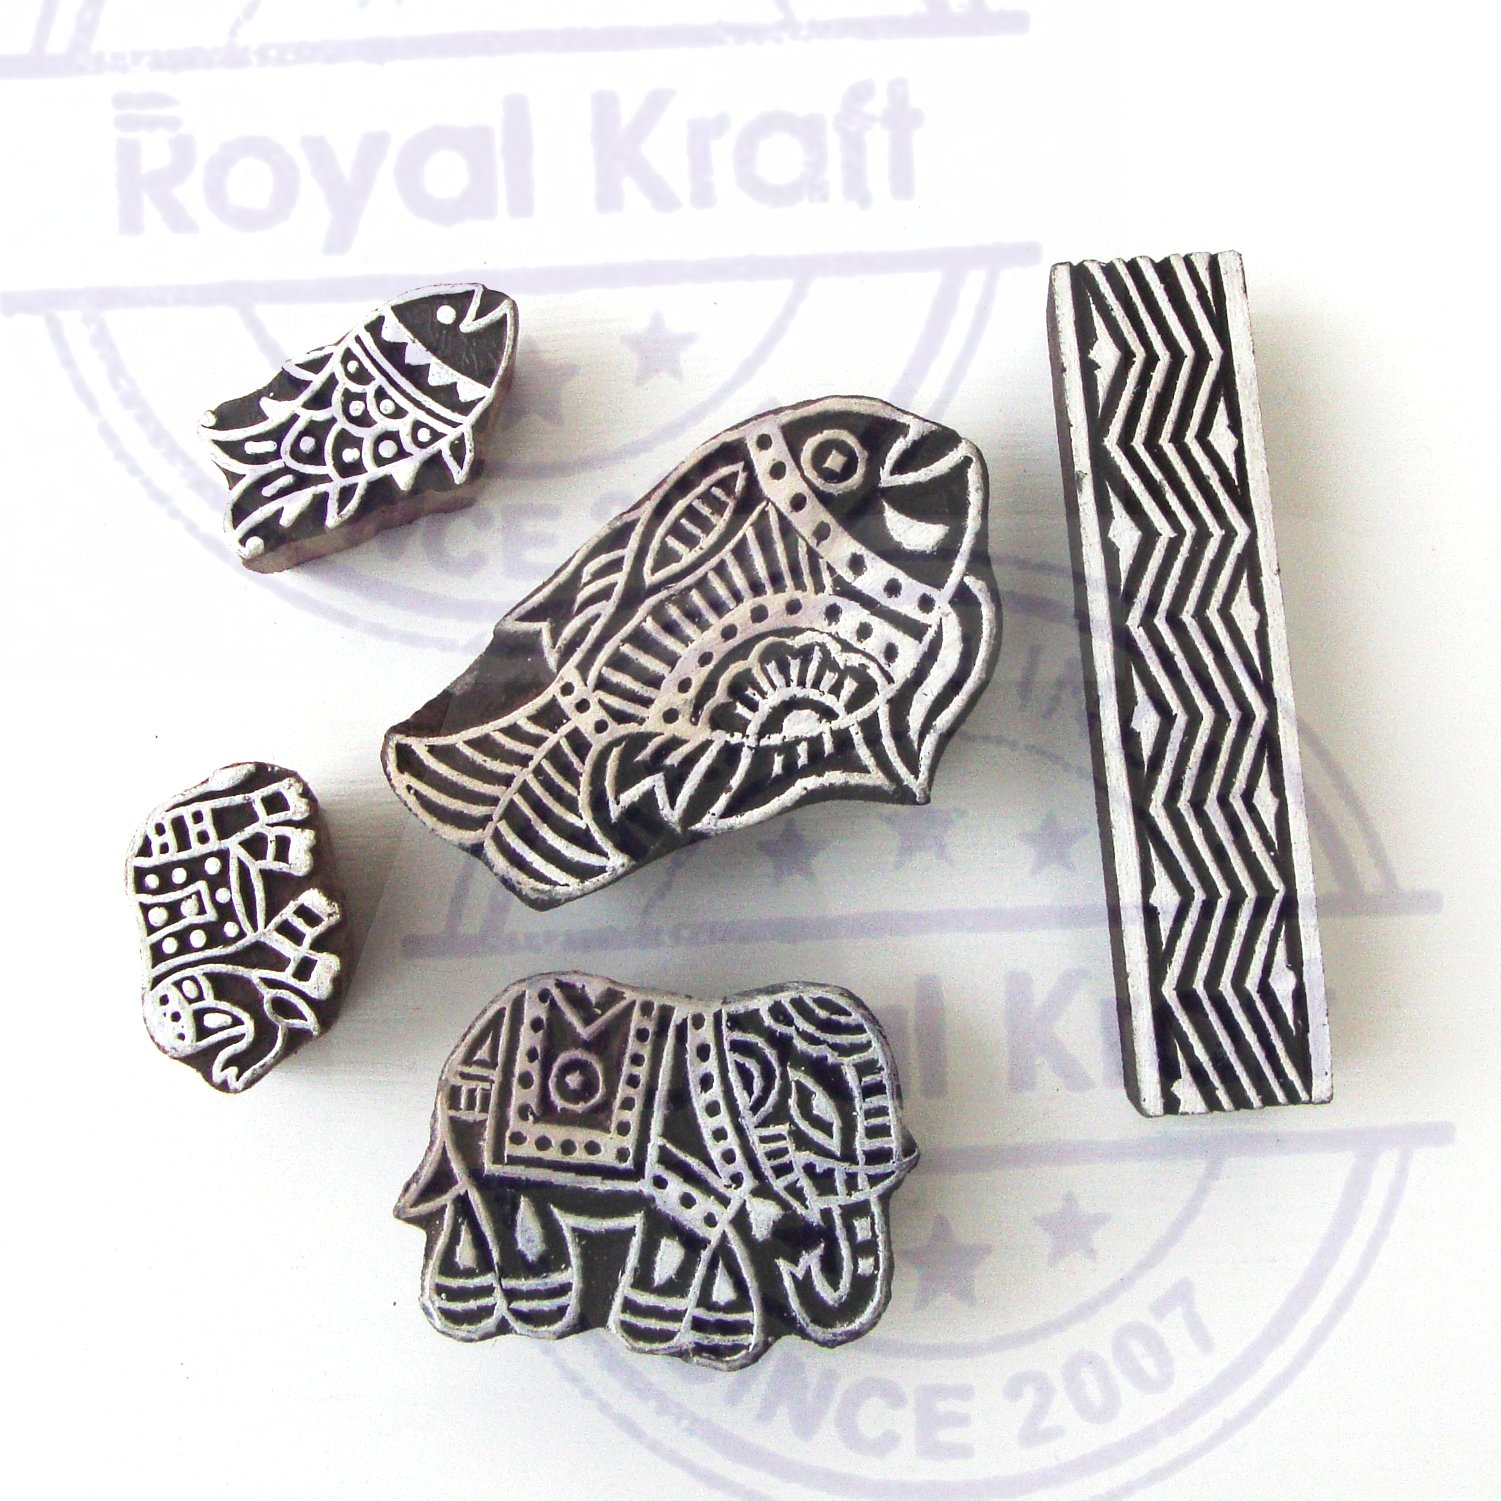 Asian Elephant and Fish Motif Wood Print Stamps (Set of 5) by Royal Kraft (Image #2)